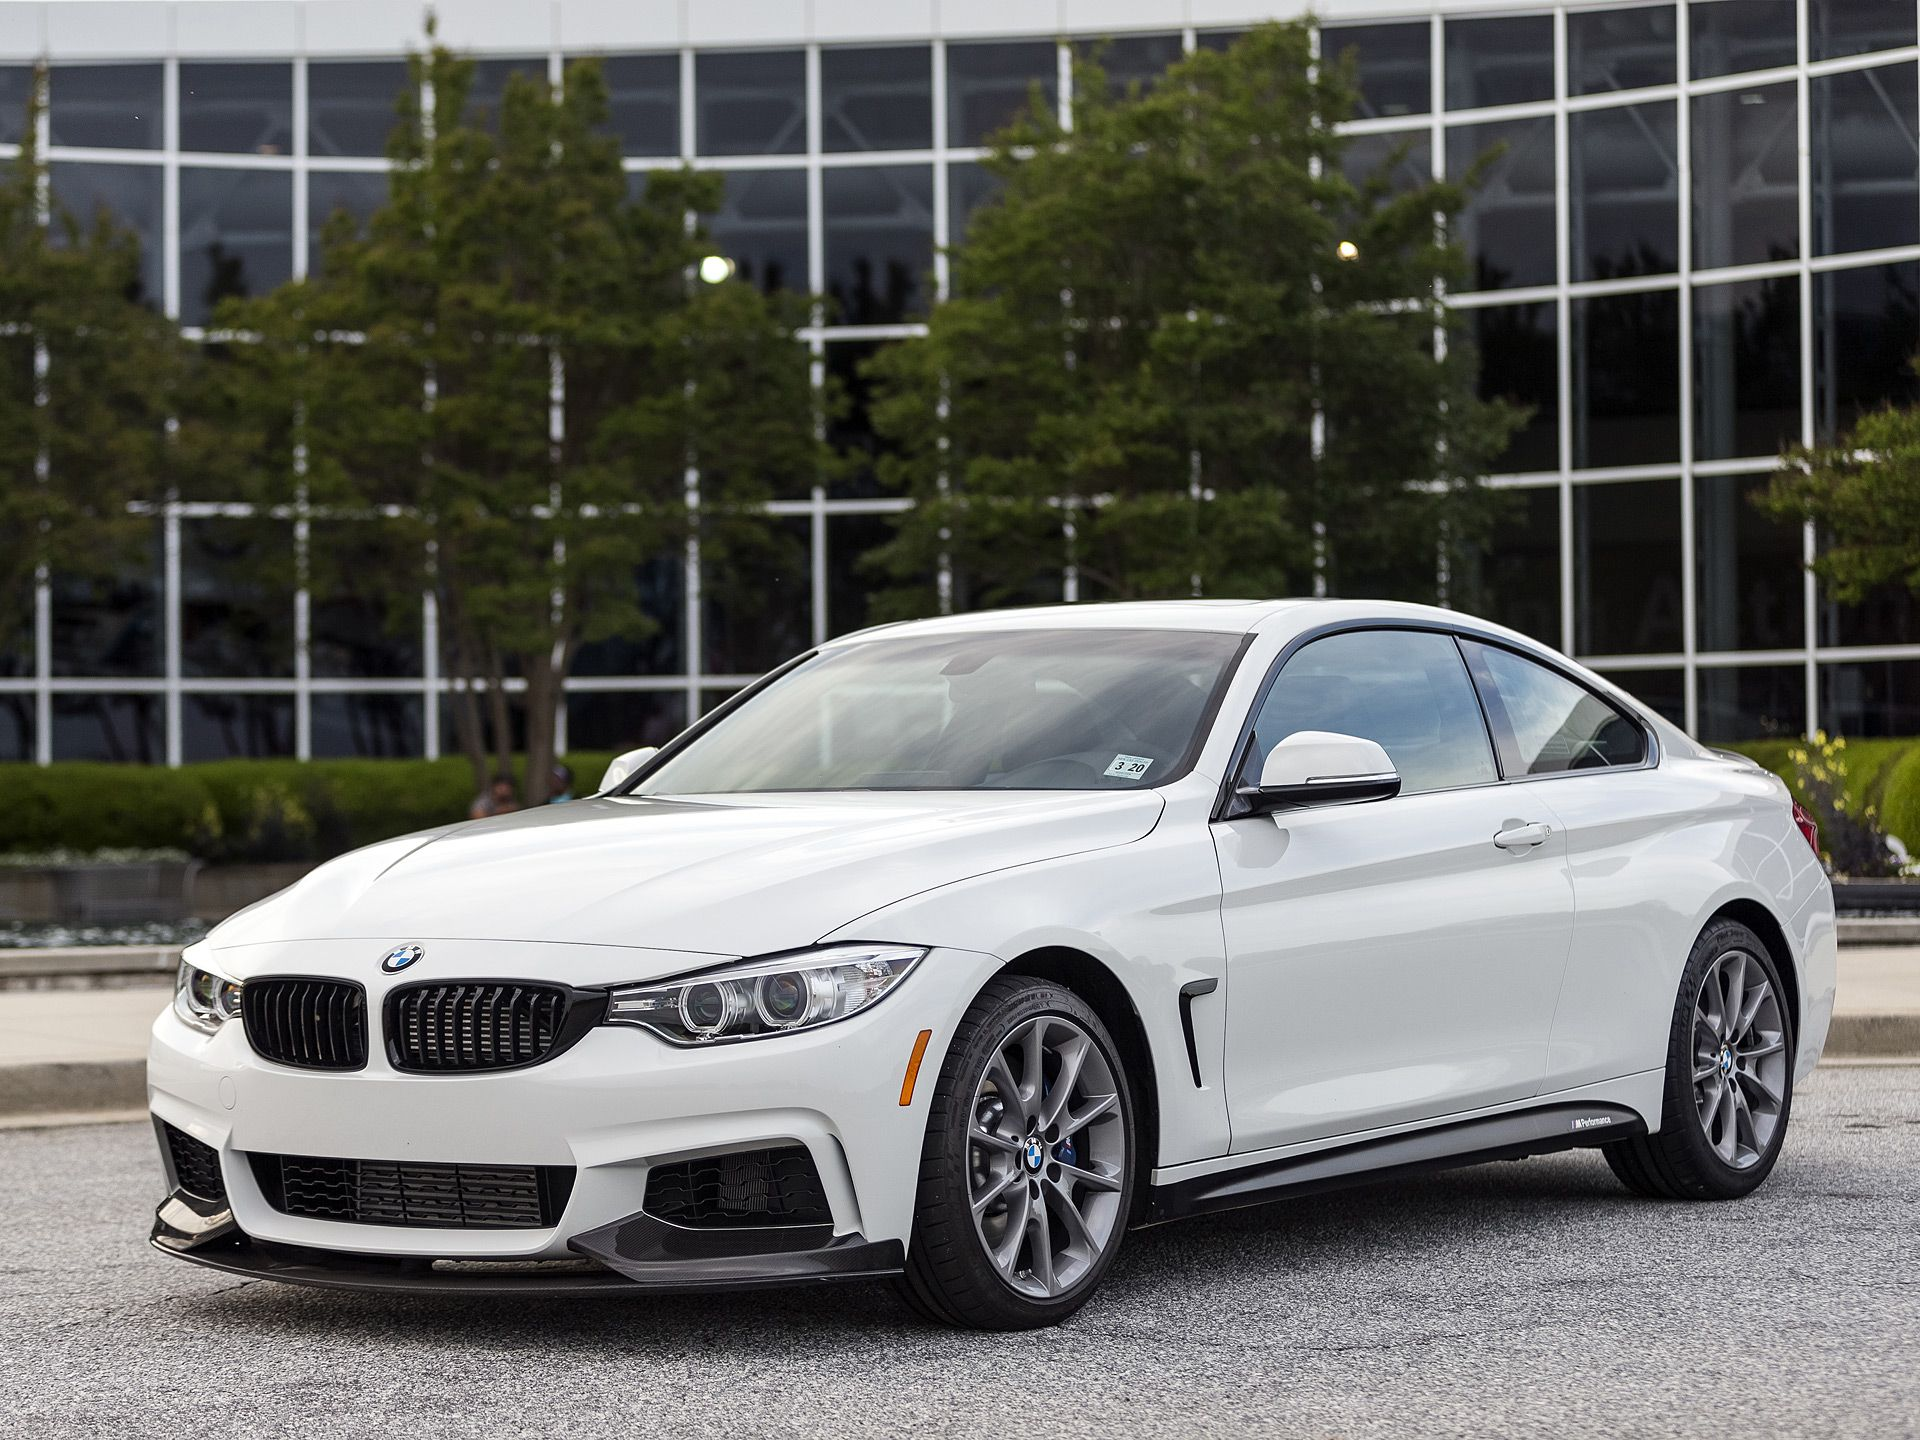 2016 BMW 435i ZHP Coupe -3.0L Inline 312 kW (335 hp)-Torque:.450 Nm (332 lb-ft)